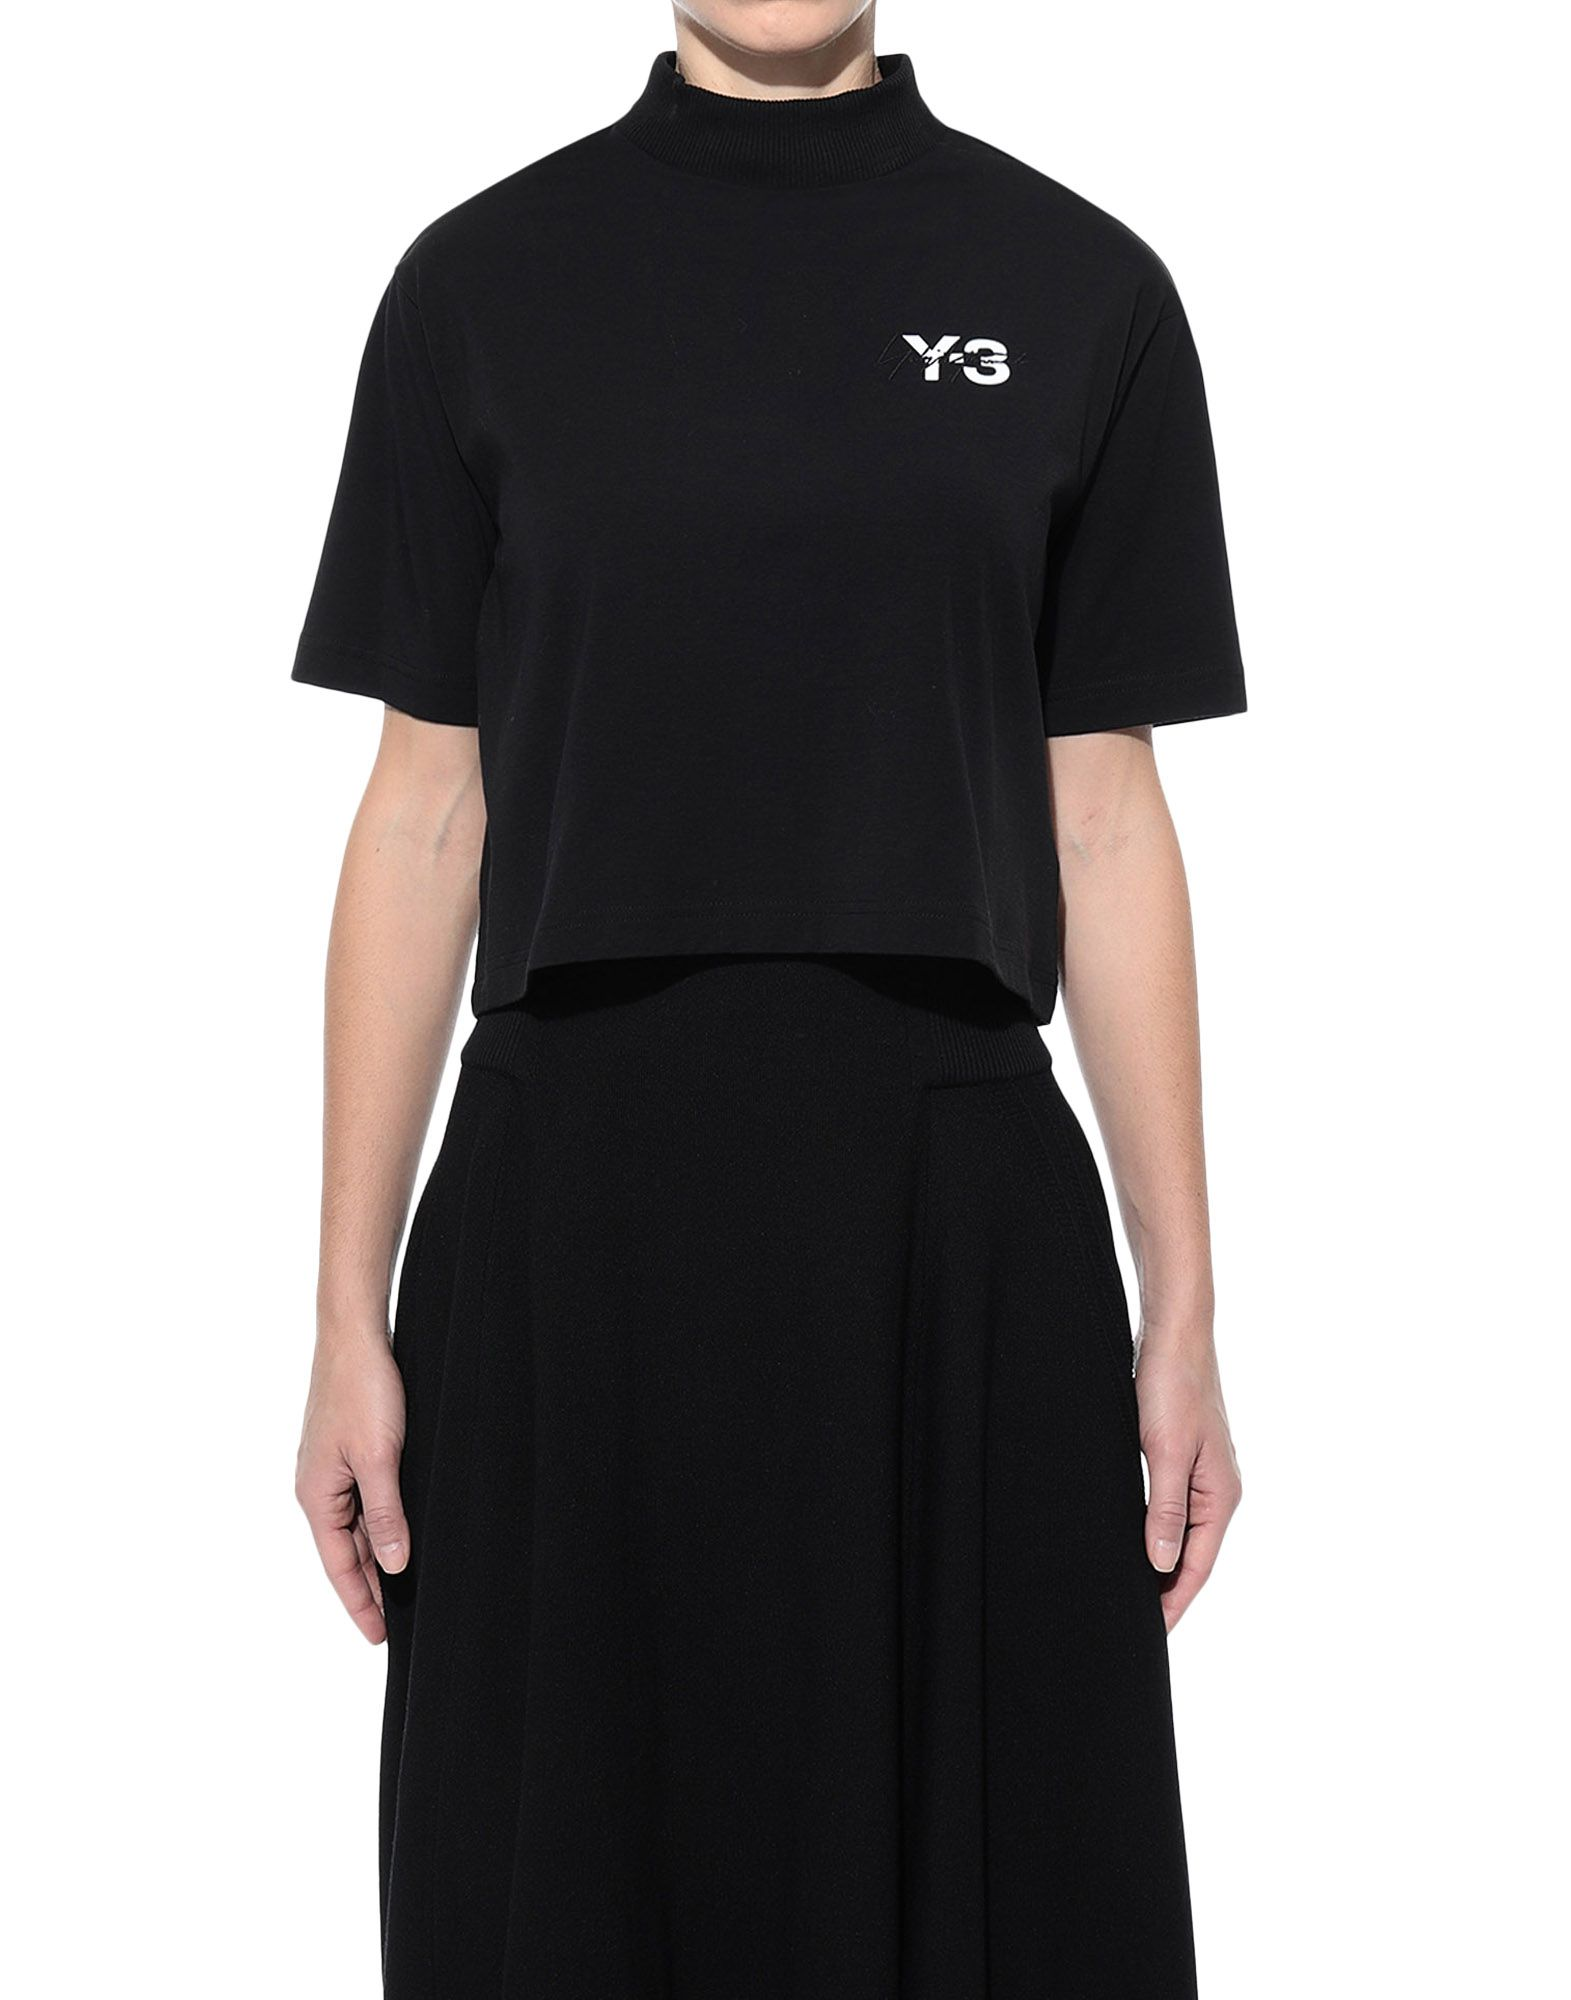 Y-3 Y-3 SIGNATURE CROP TEE Short sleeve t-shirt Woman r